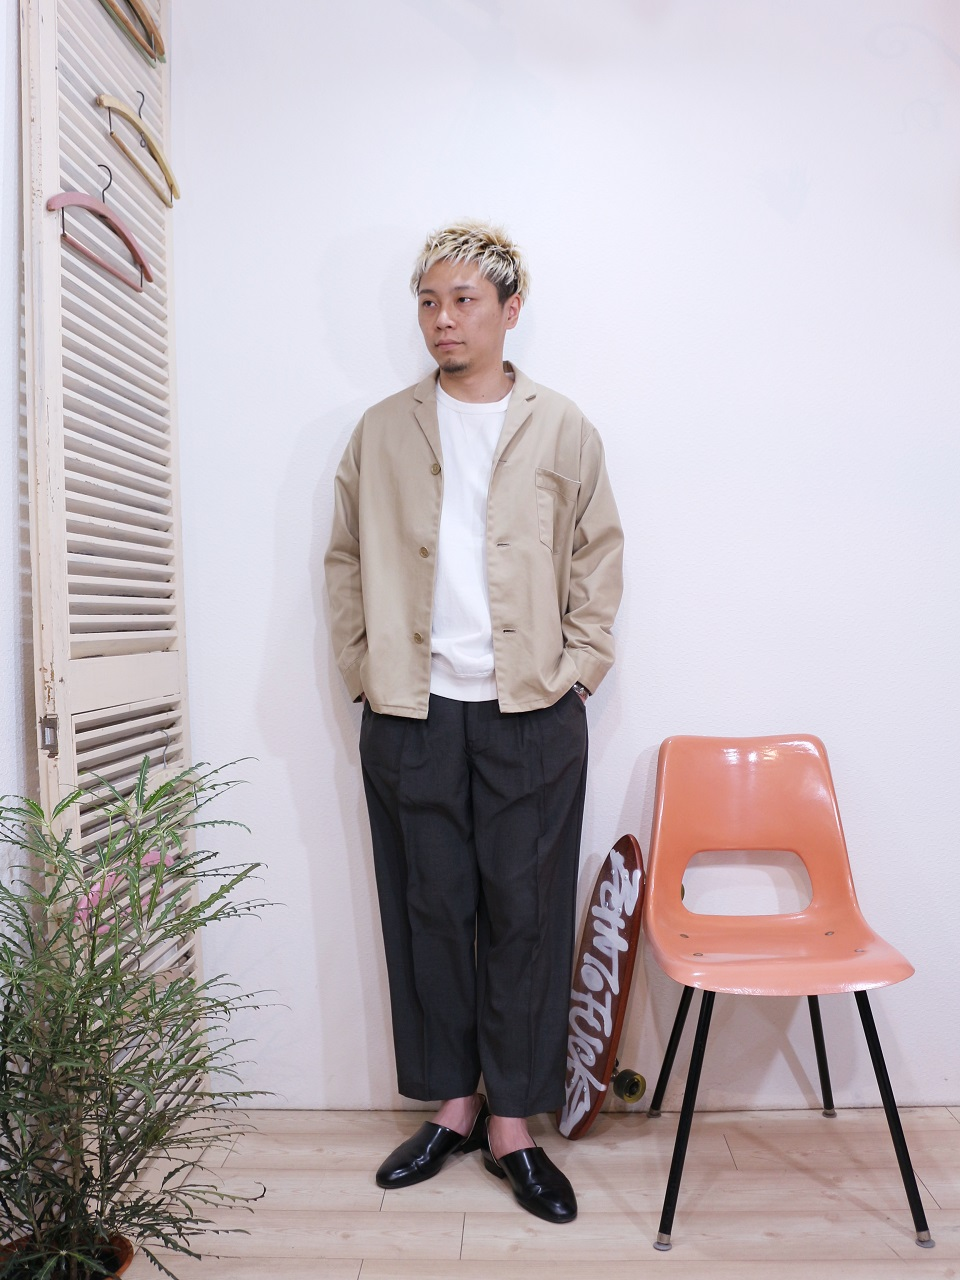 outer/SUNNY SPORTS-PAJAMA JACKET(SIZE M)tee/FRUIT OF THE LOOM-SWEAT STYLE L/S TEE(SIZE M)pants/Kelen-Affleck(SIZE 38)を使ったコーディネート